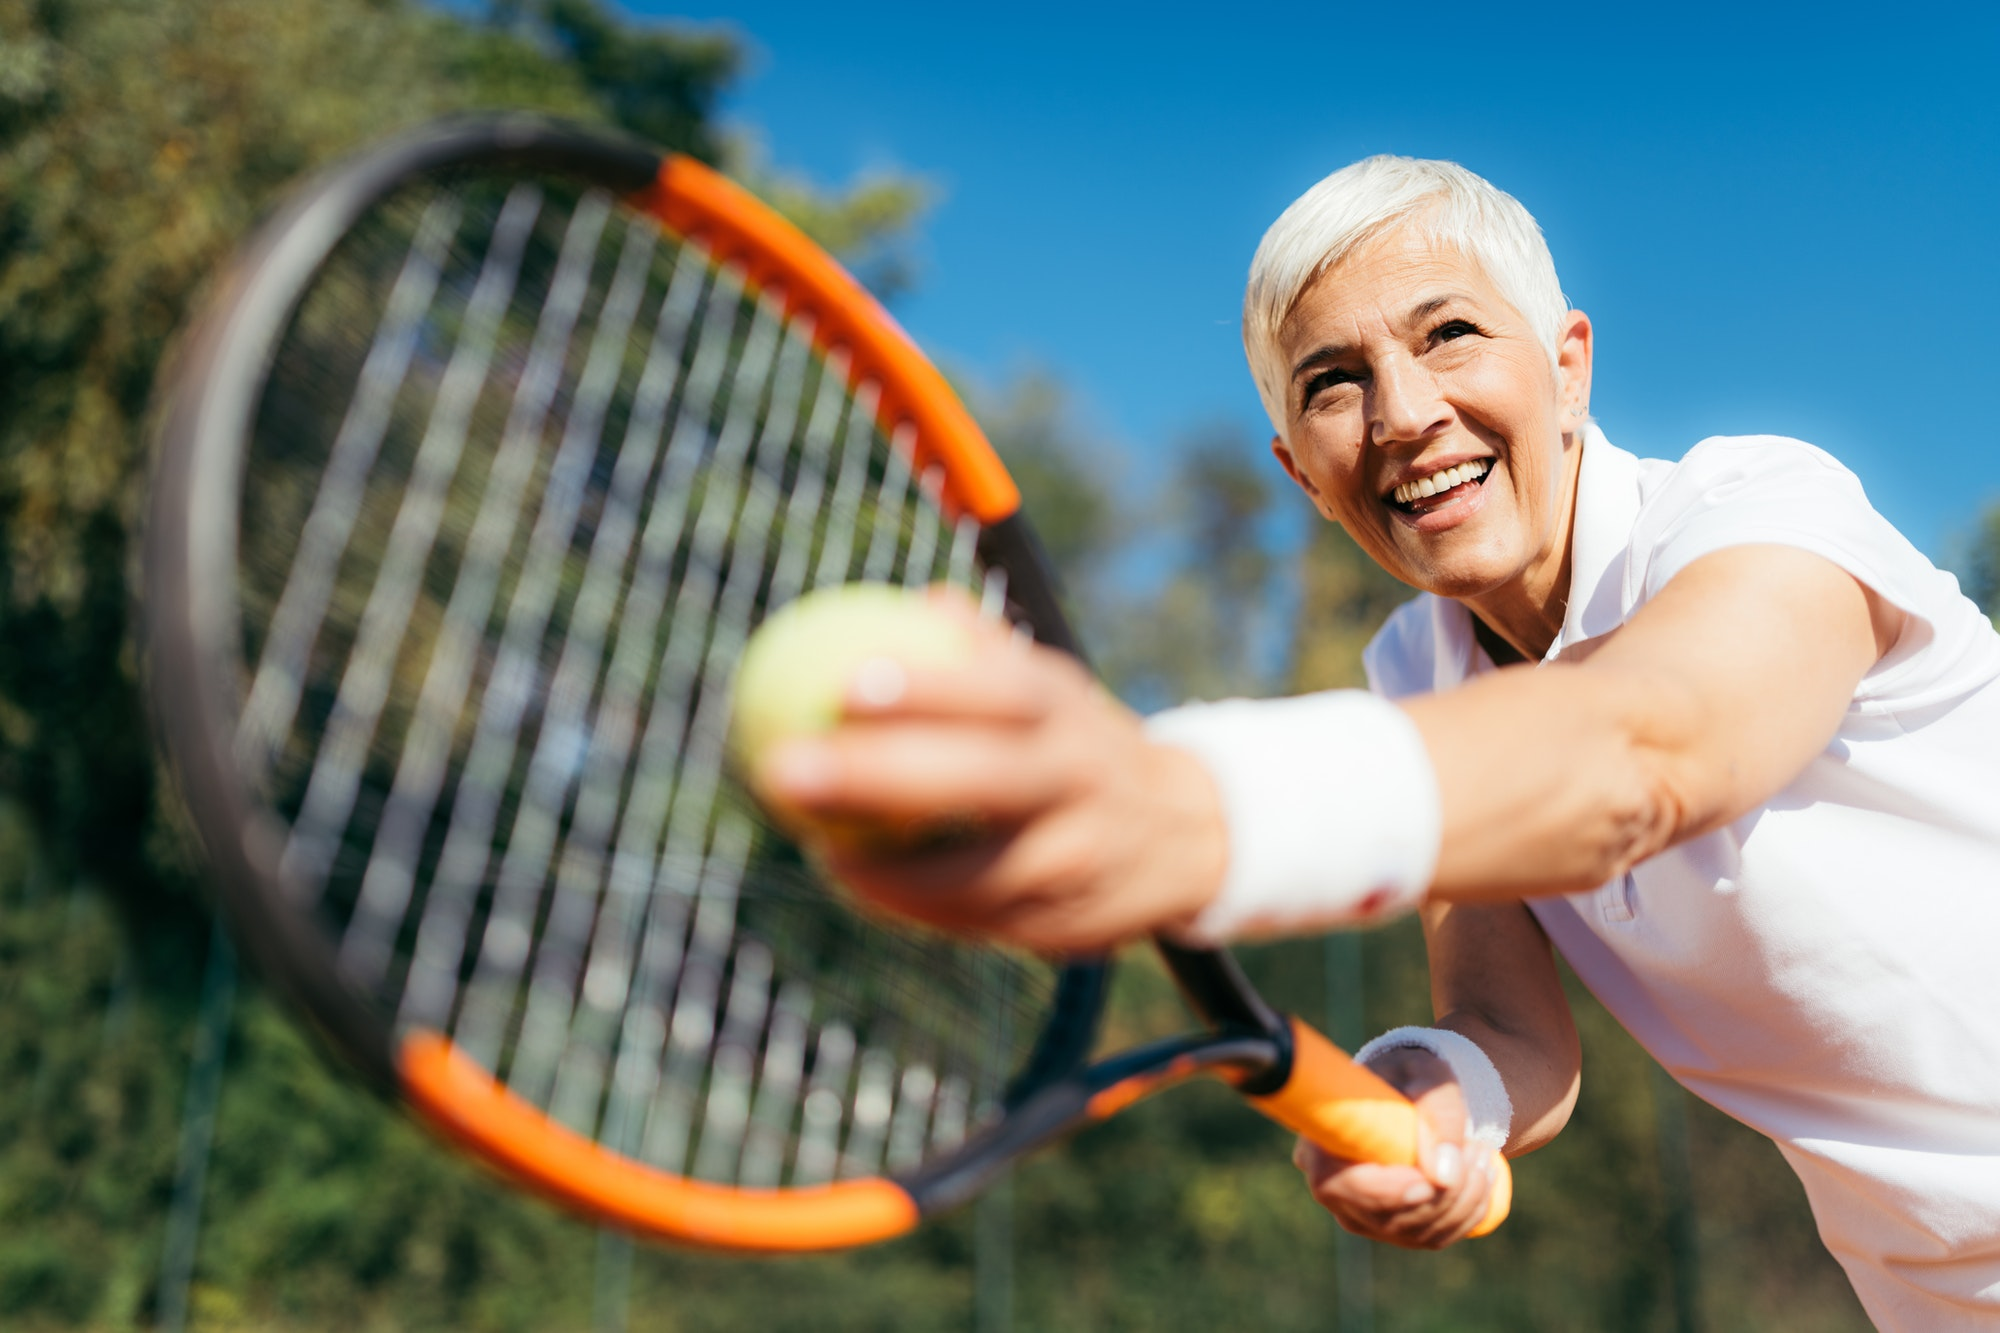 Senior Tennis – Pretty Mature Woman Serving Ball in Tennis